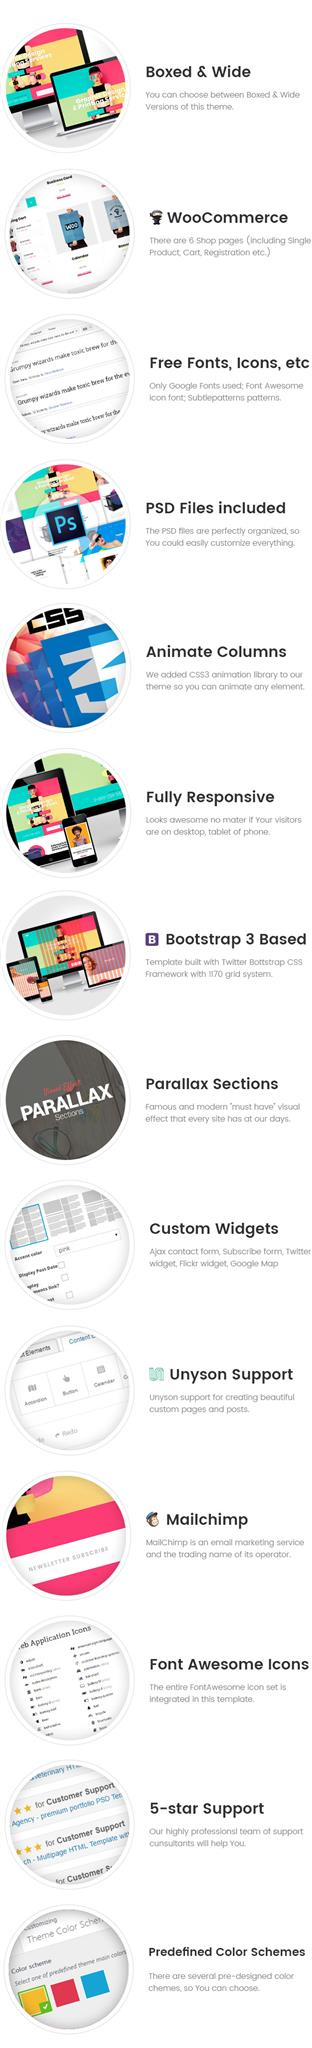 ColorLab - Printing Services WordPress Theme